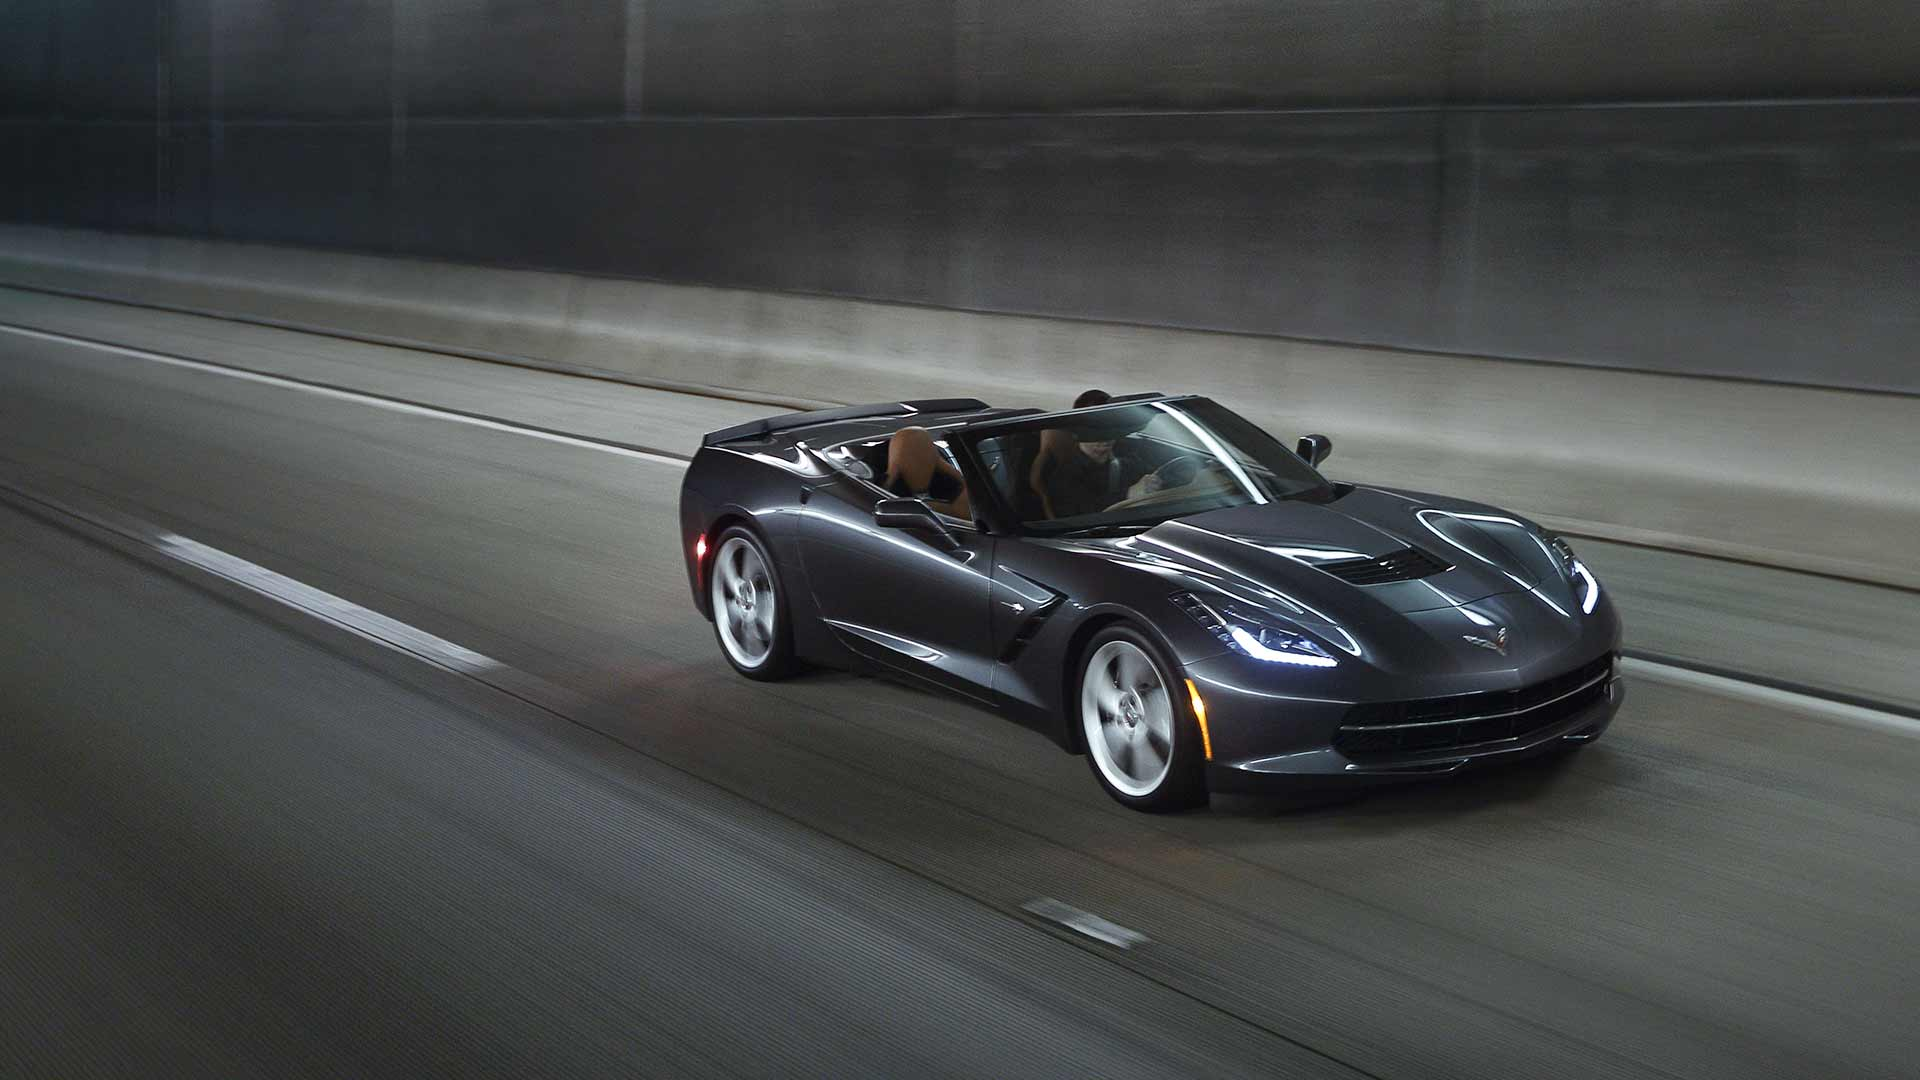 2014 corvette stingray black wallpaper  Name : 2014 Chevrolet Corvette Stingray Convertible Black HD Wallpaper